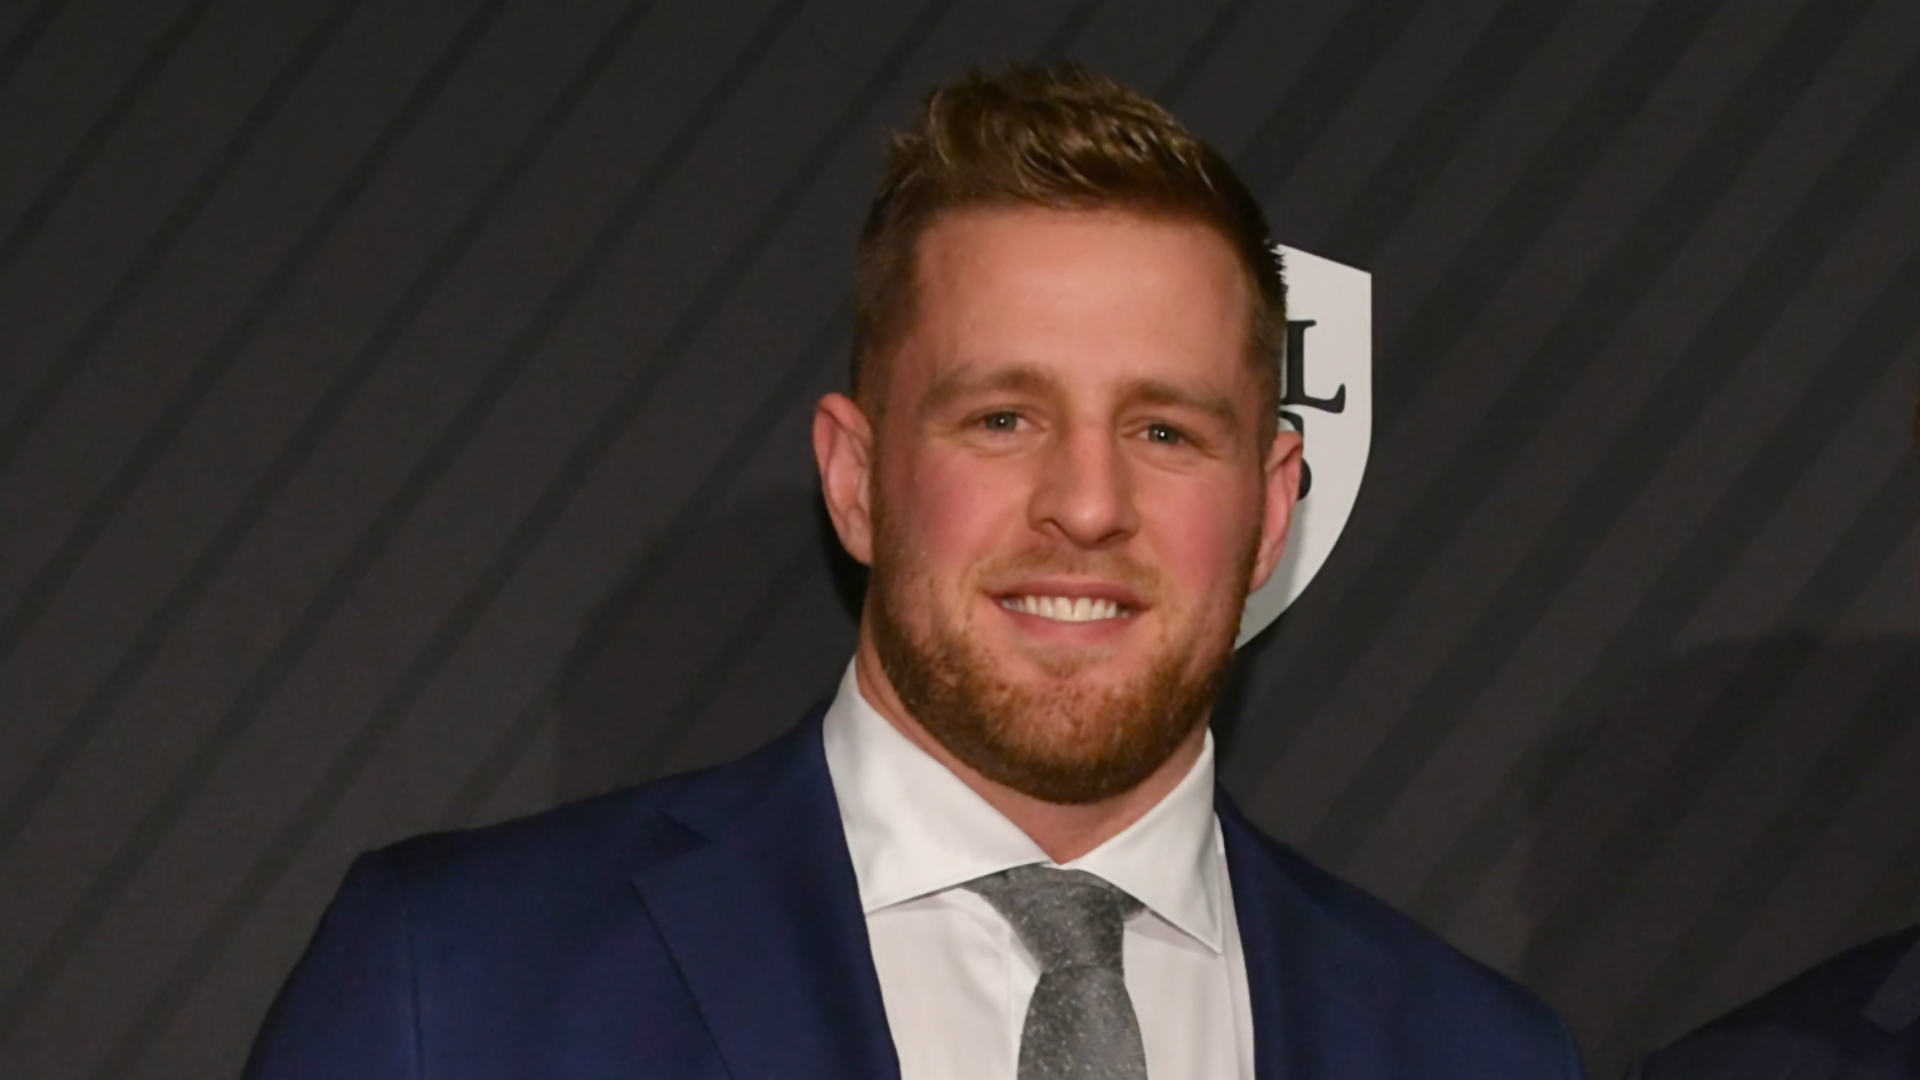 Jj Watt To Receive Honorary Degree From Baylor For Hurricane